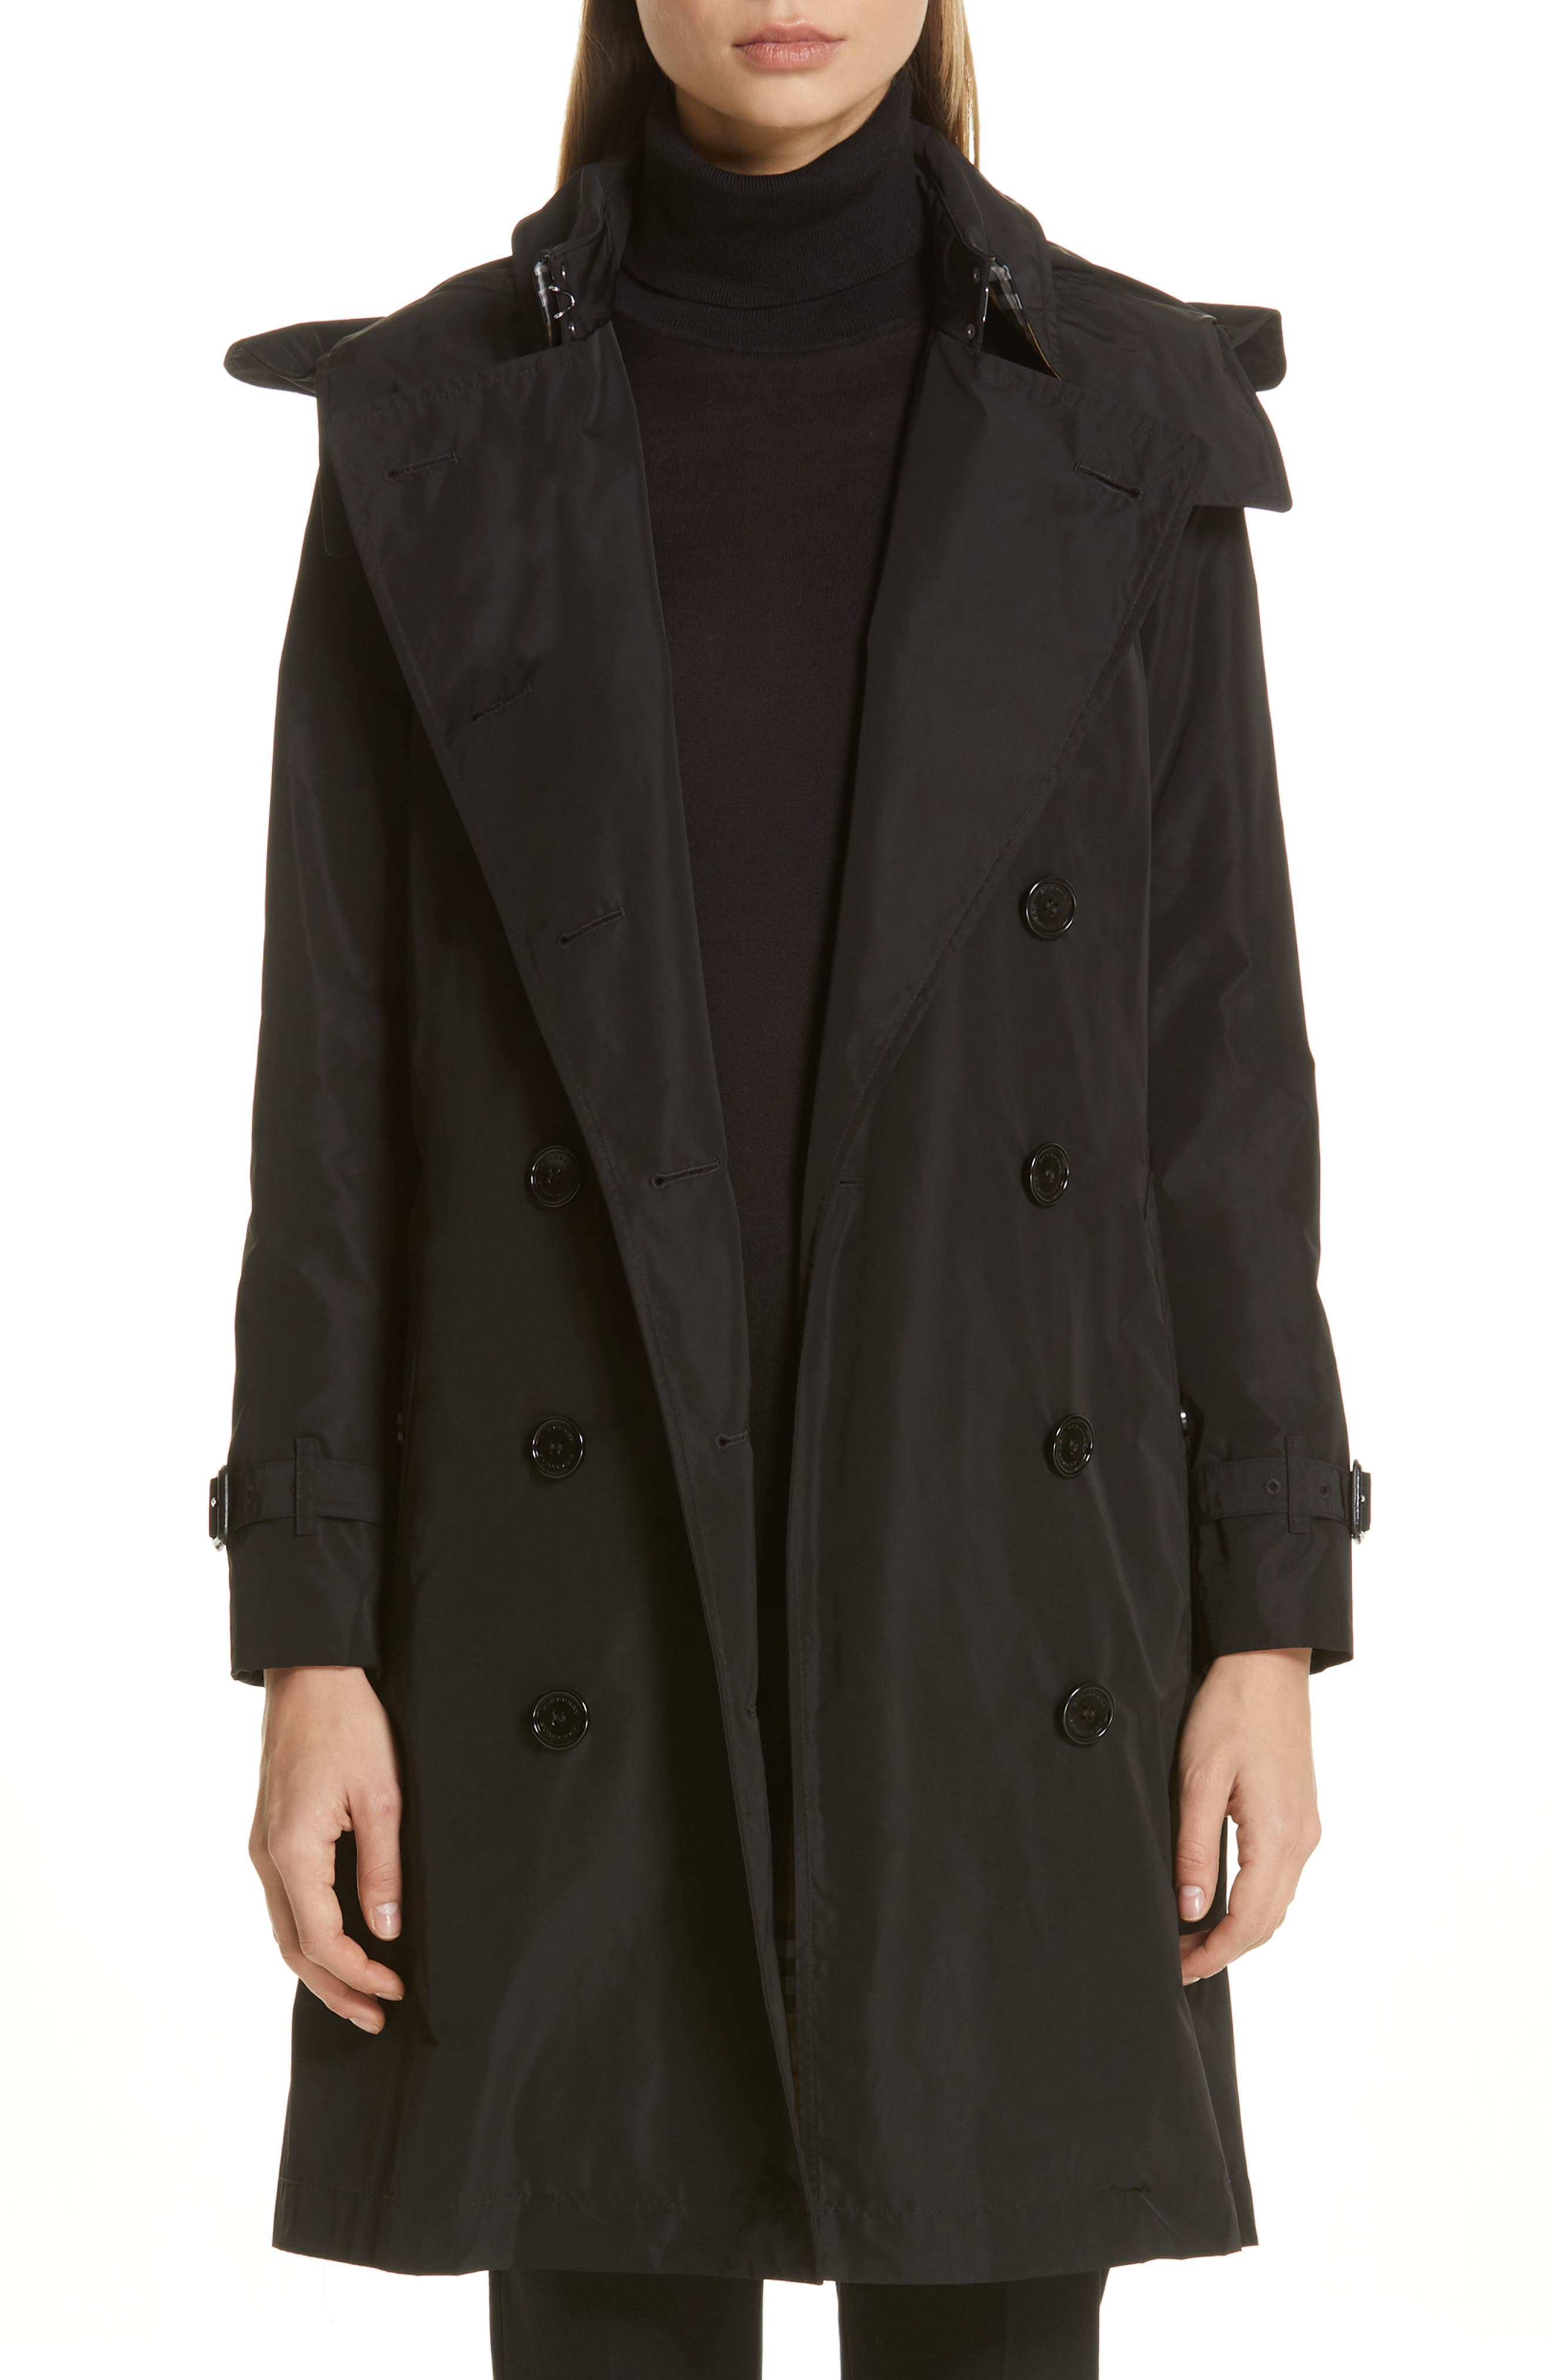 Kensington Trench Coat With Detachable Hood by Burberry